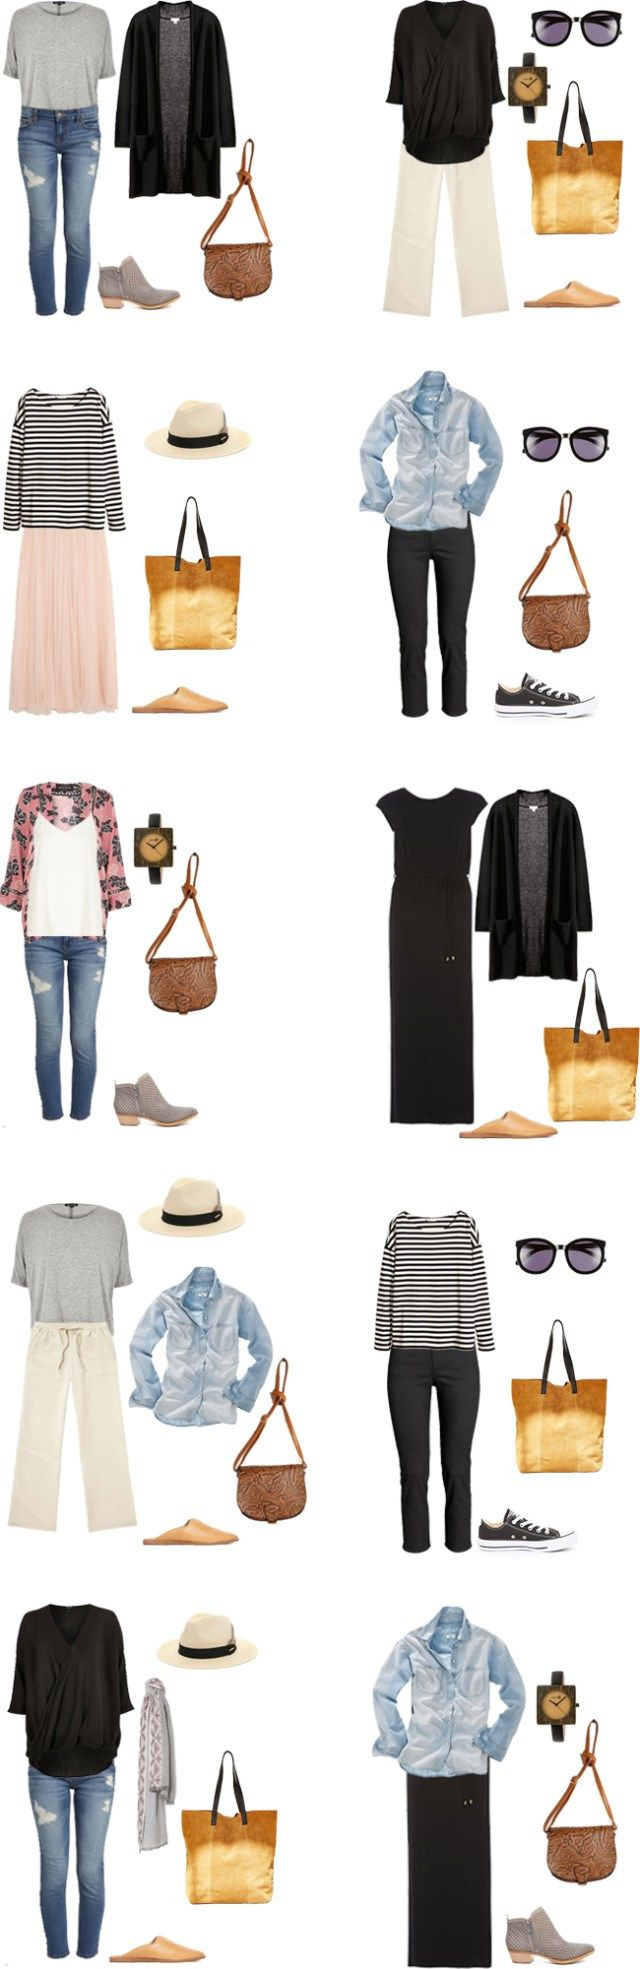 What to Wear in New Orleans Outfits 11-20 #travellight #packinglight #travel…